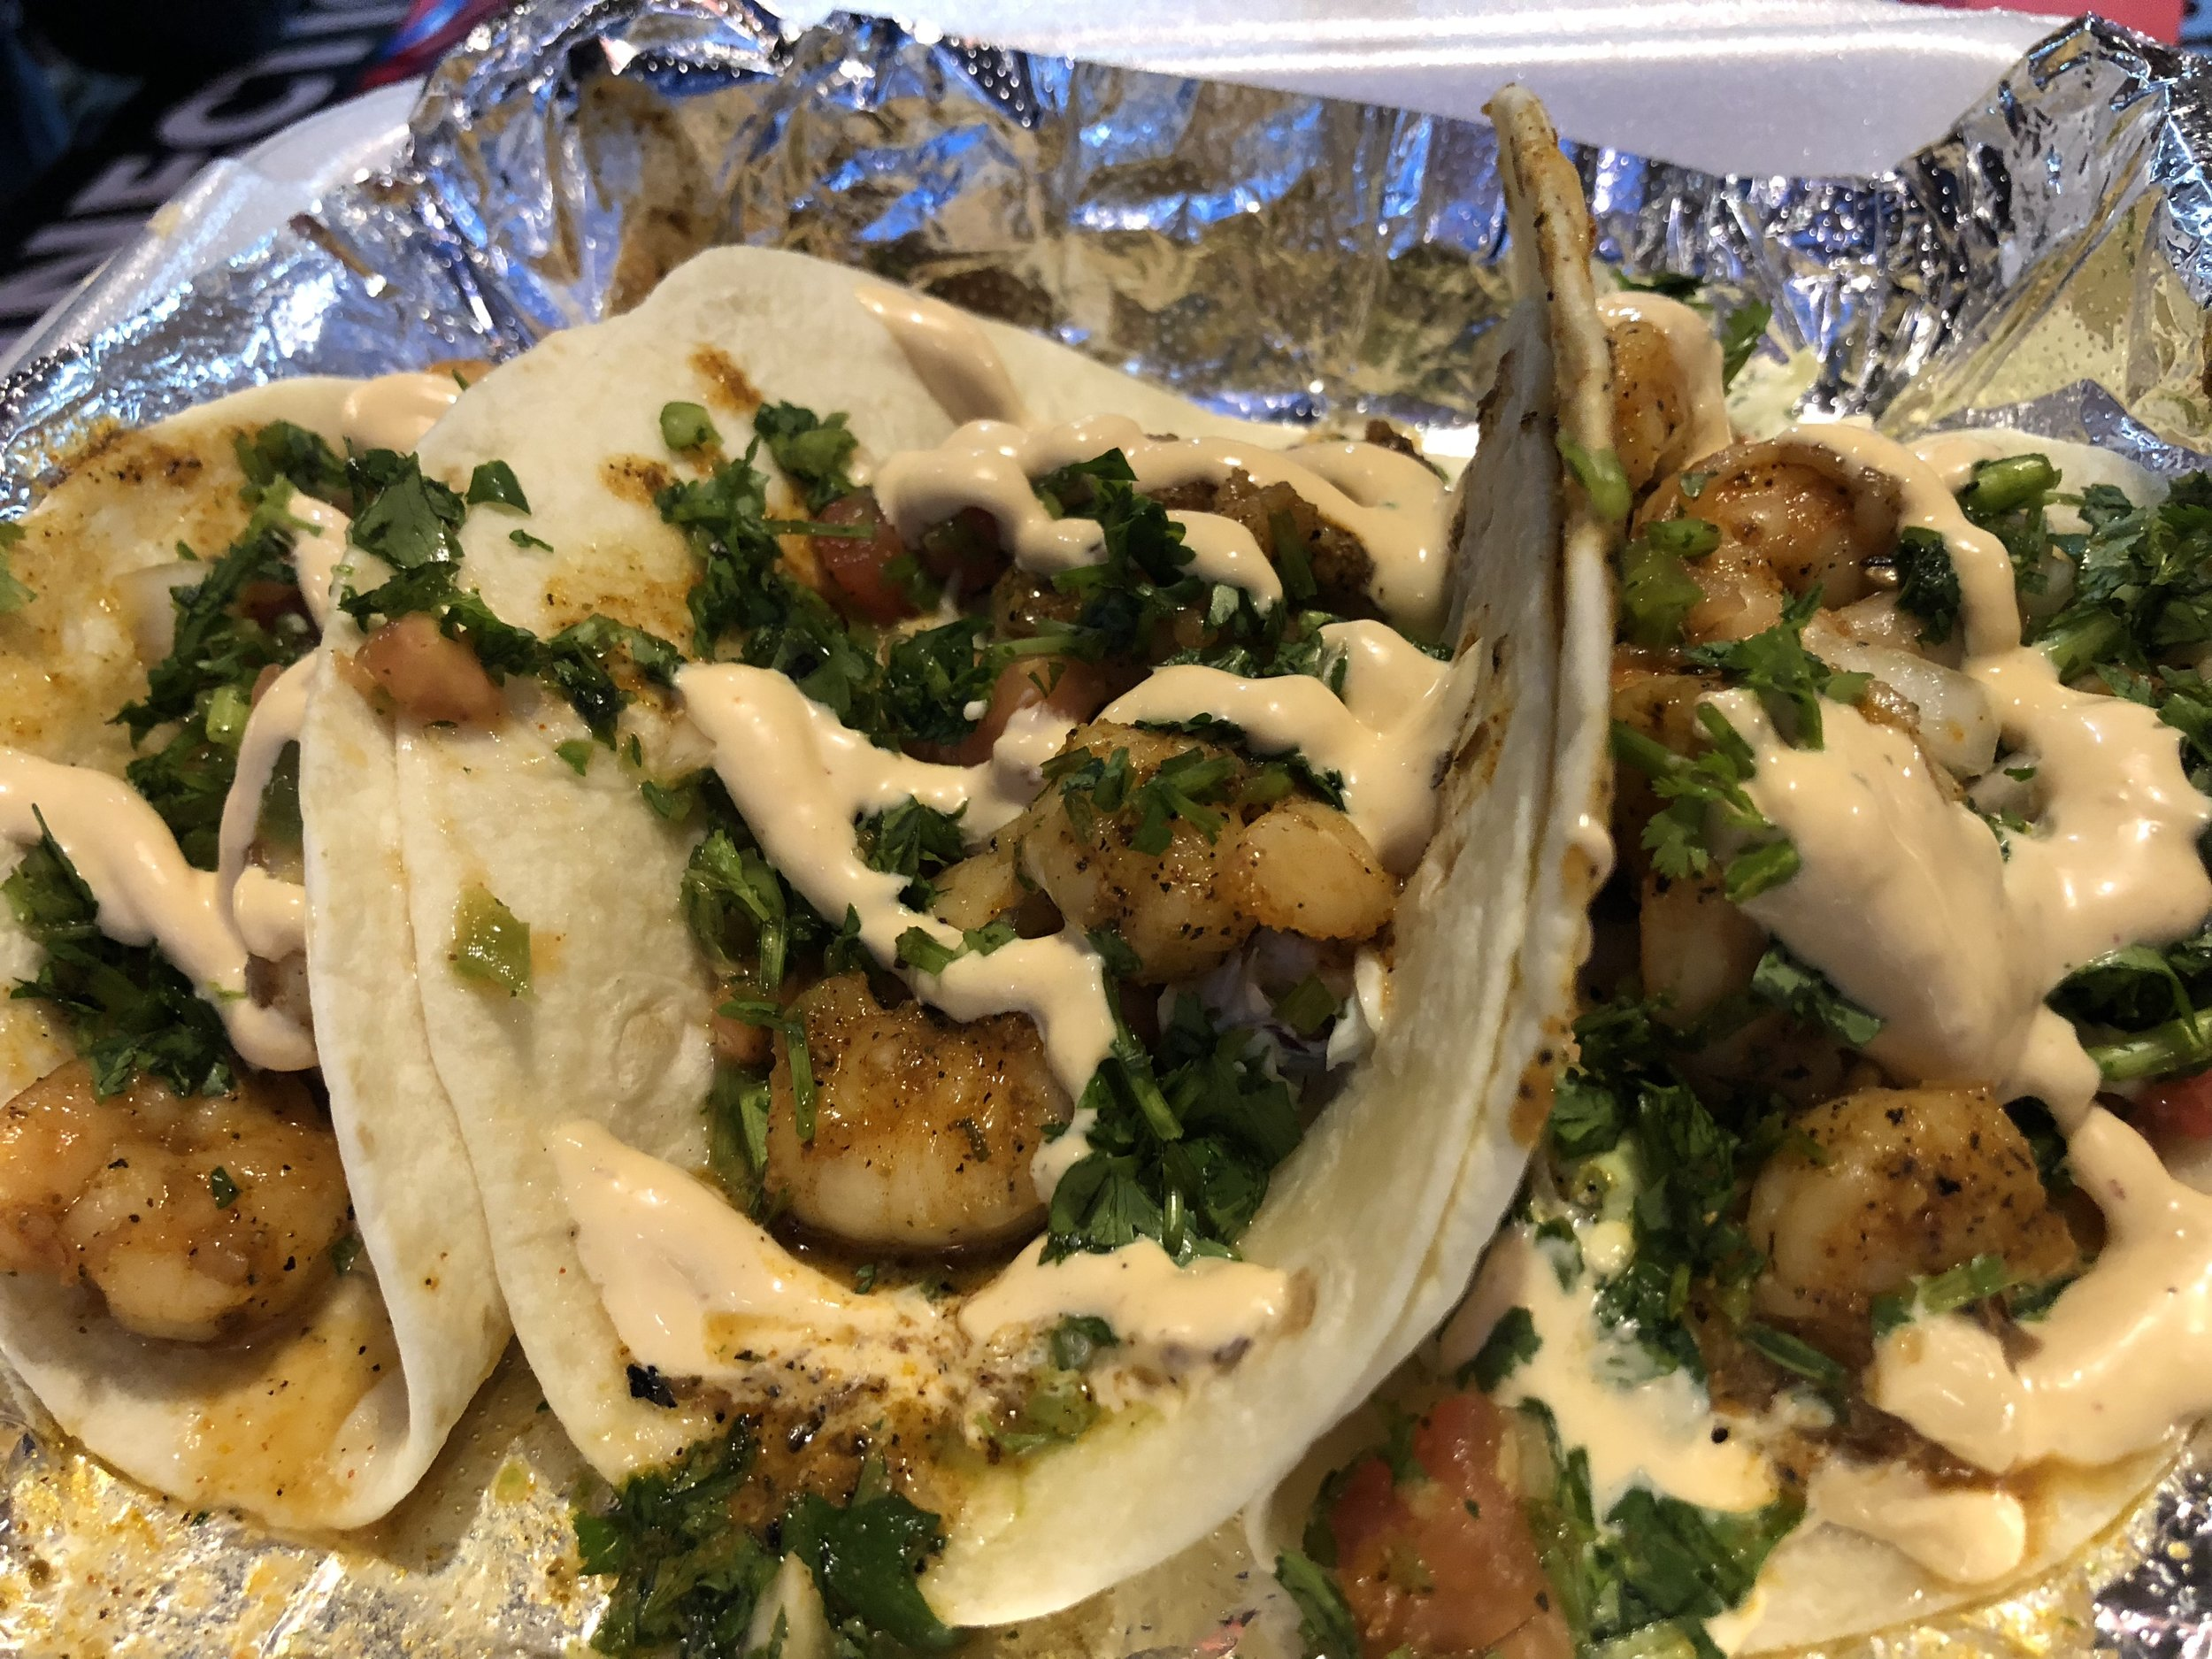 Shrimp Tacos - solid